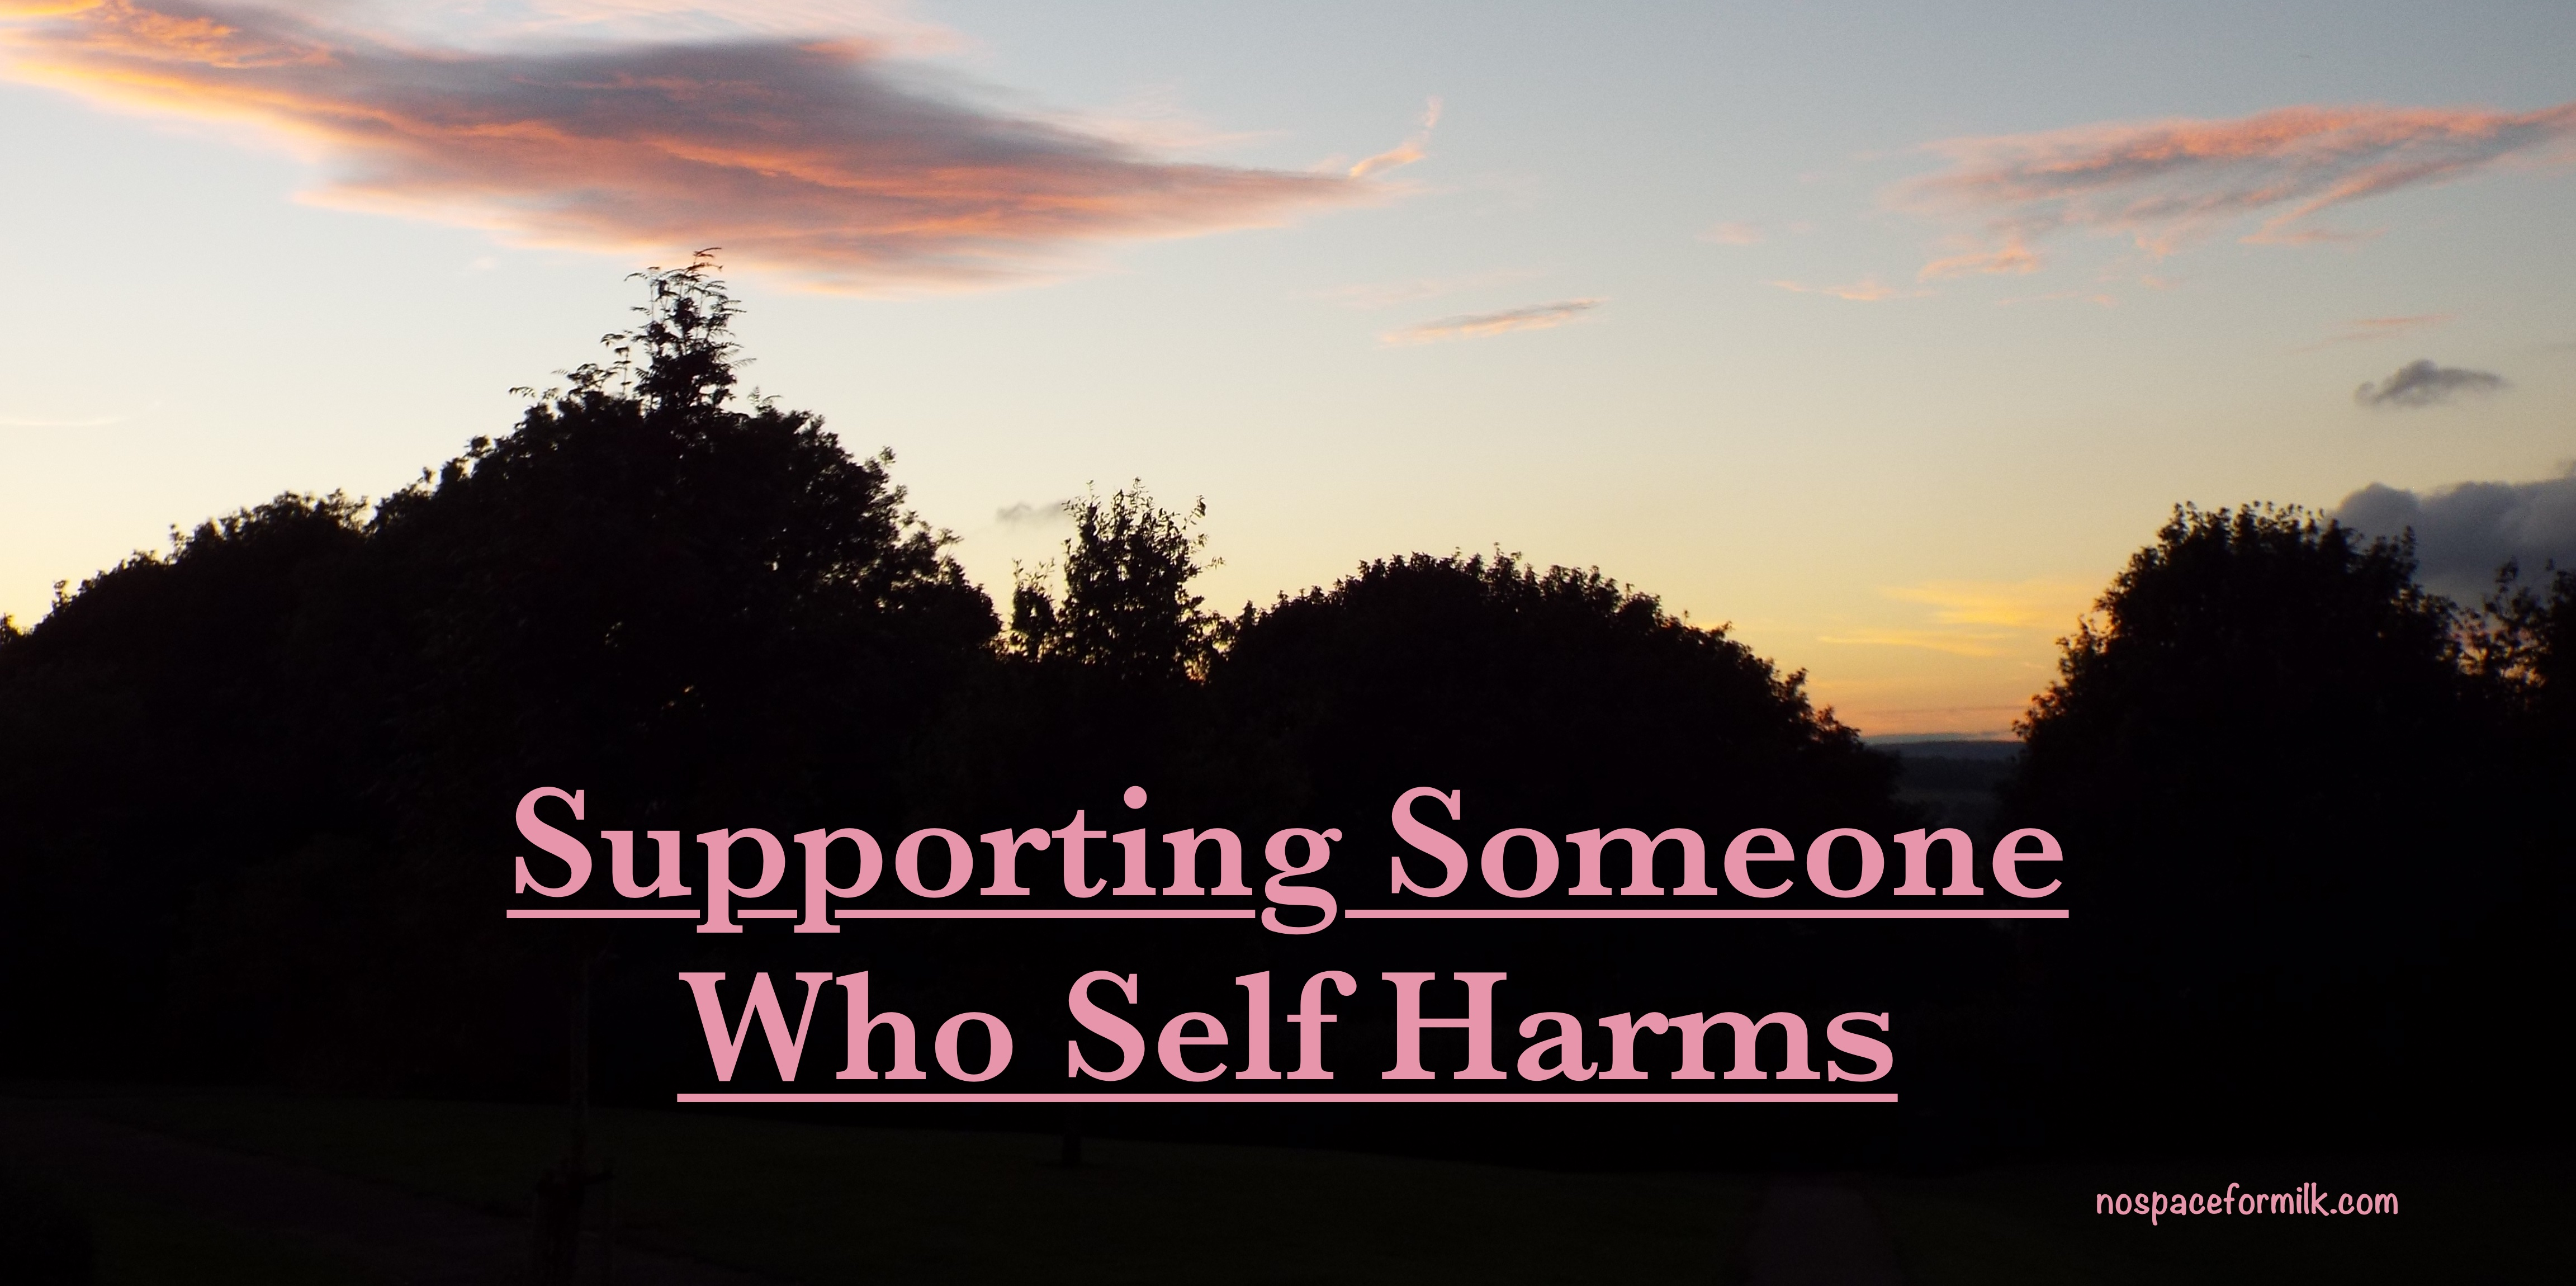 Supporting Someone Who Self Harms